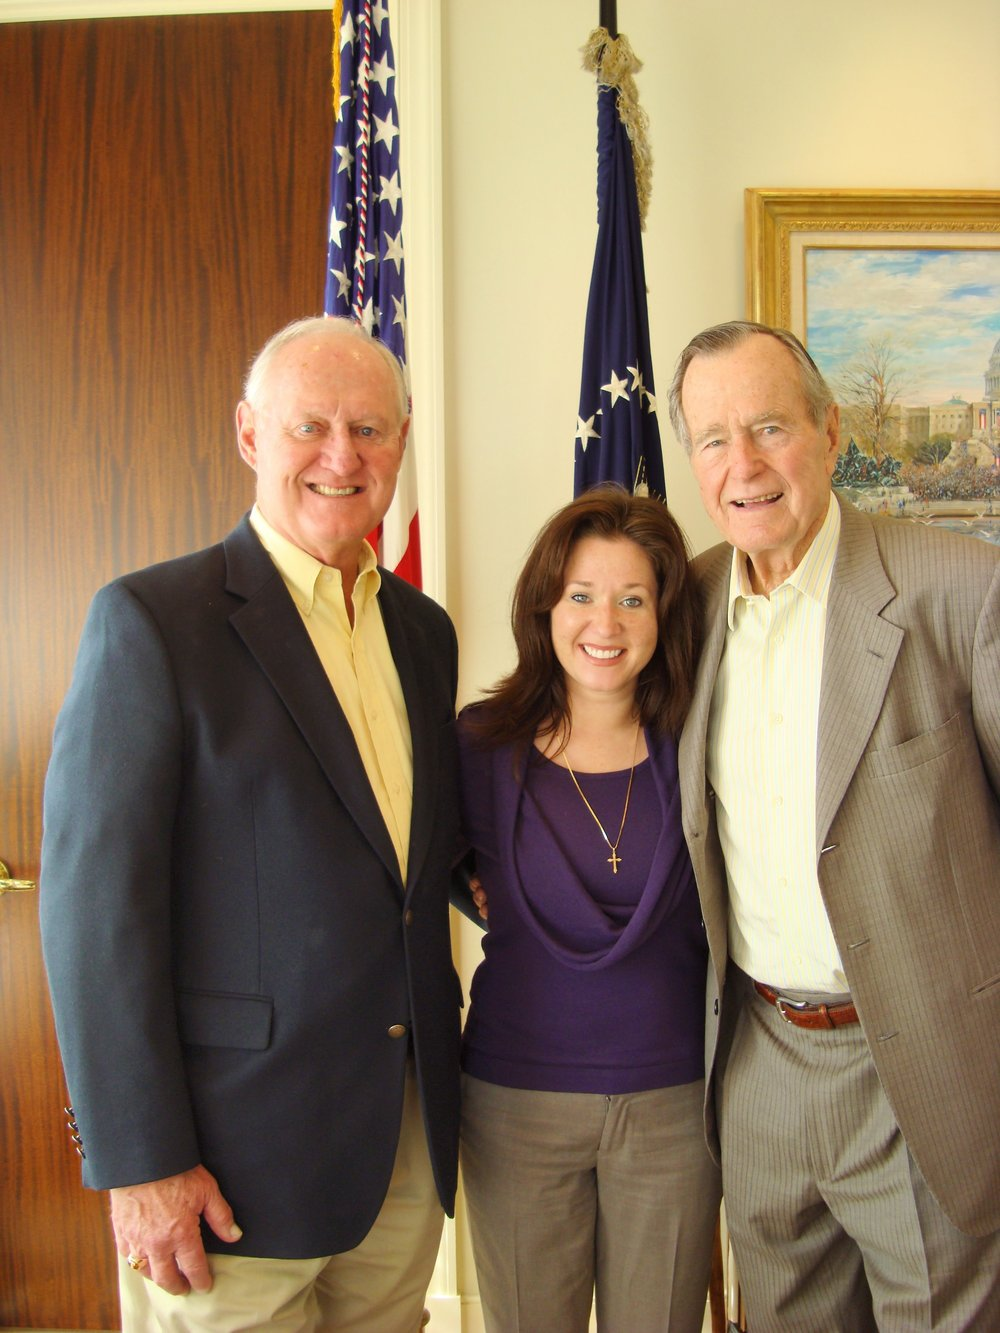 Loyd, Angie, and President Bush